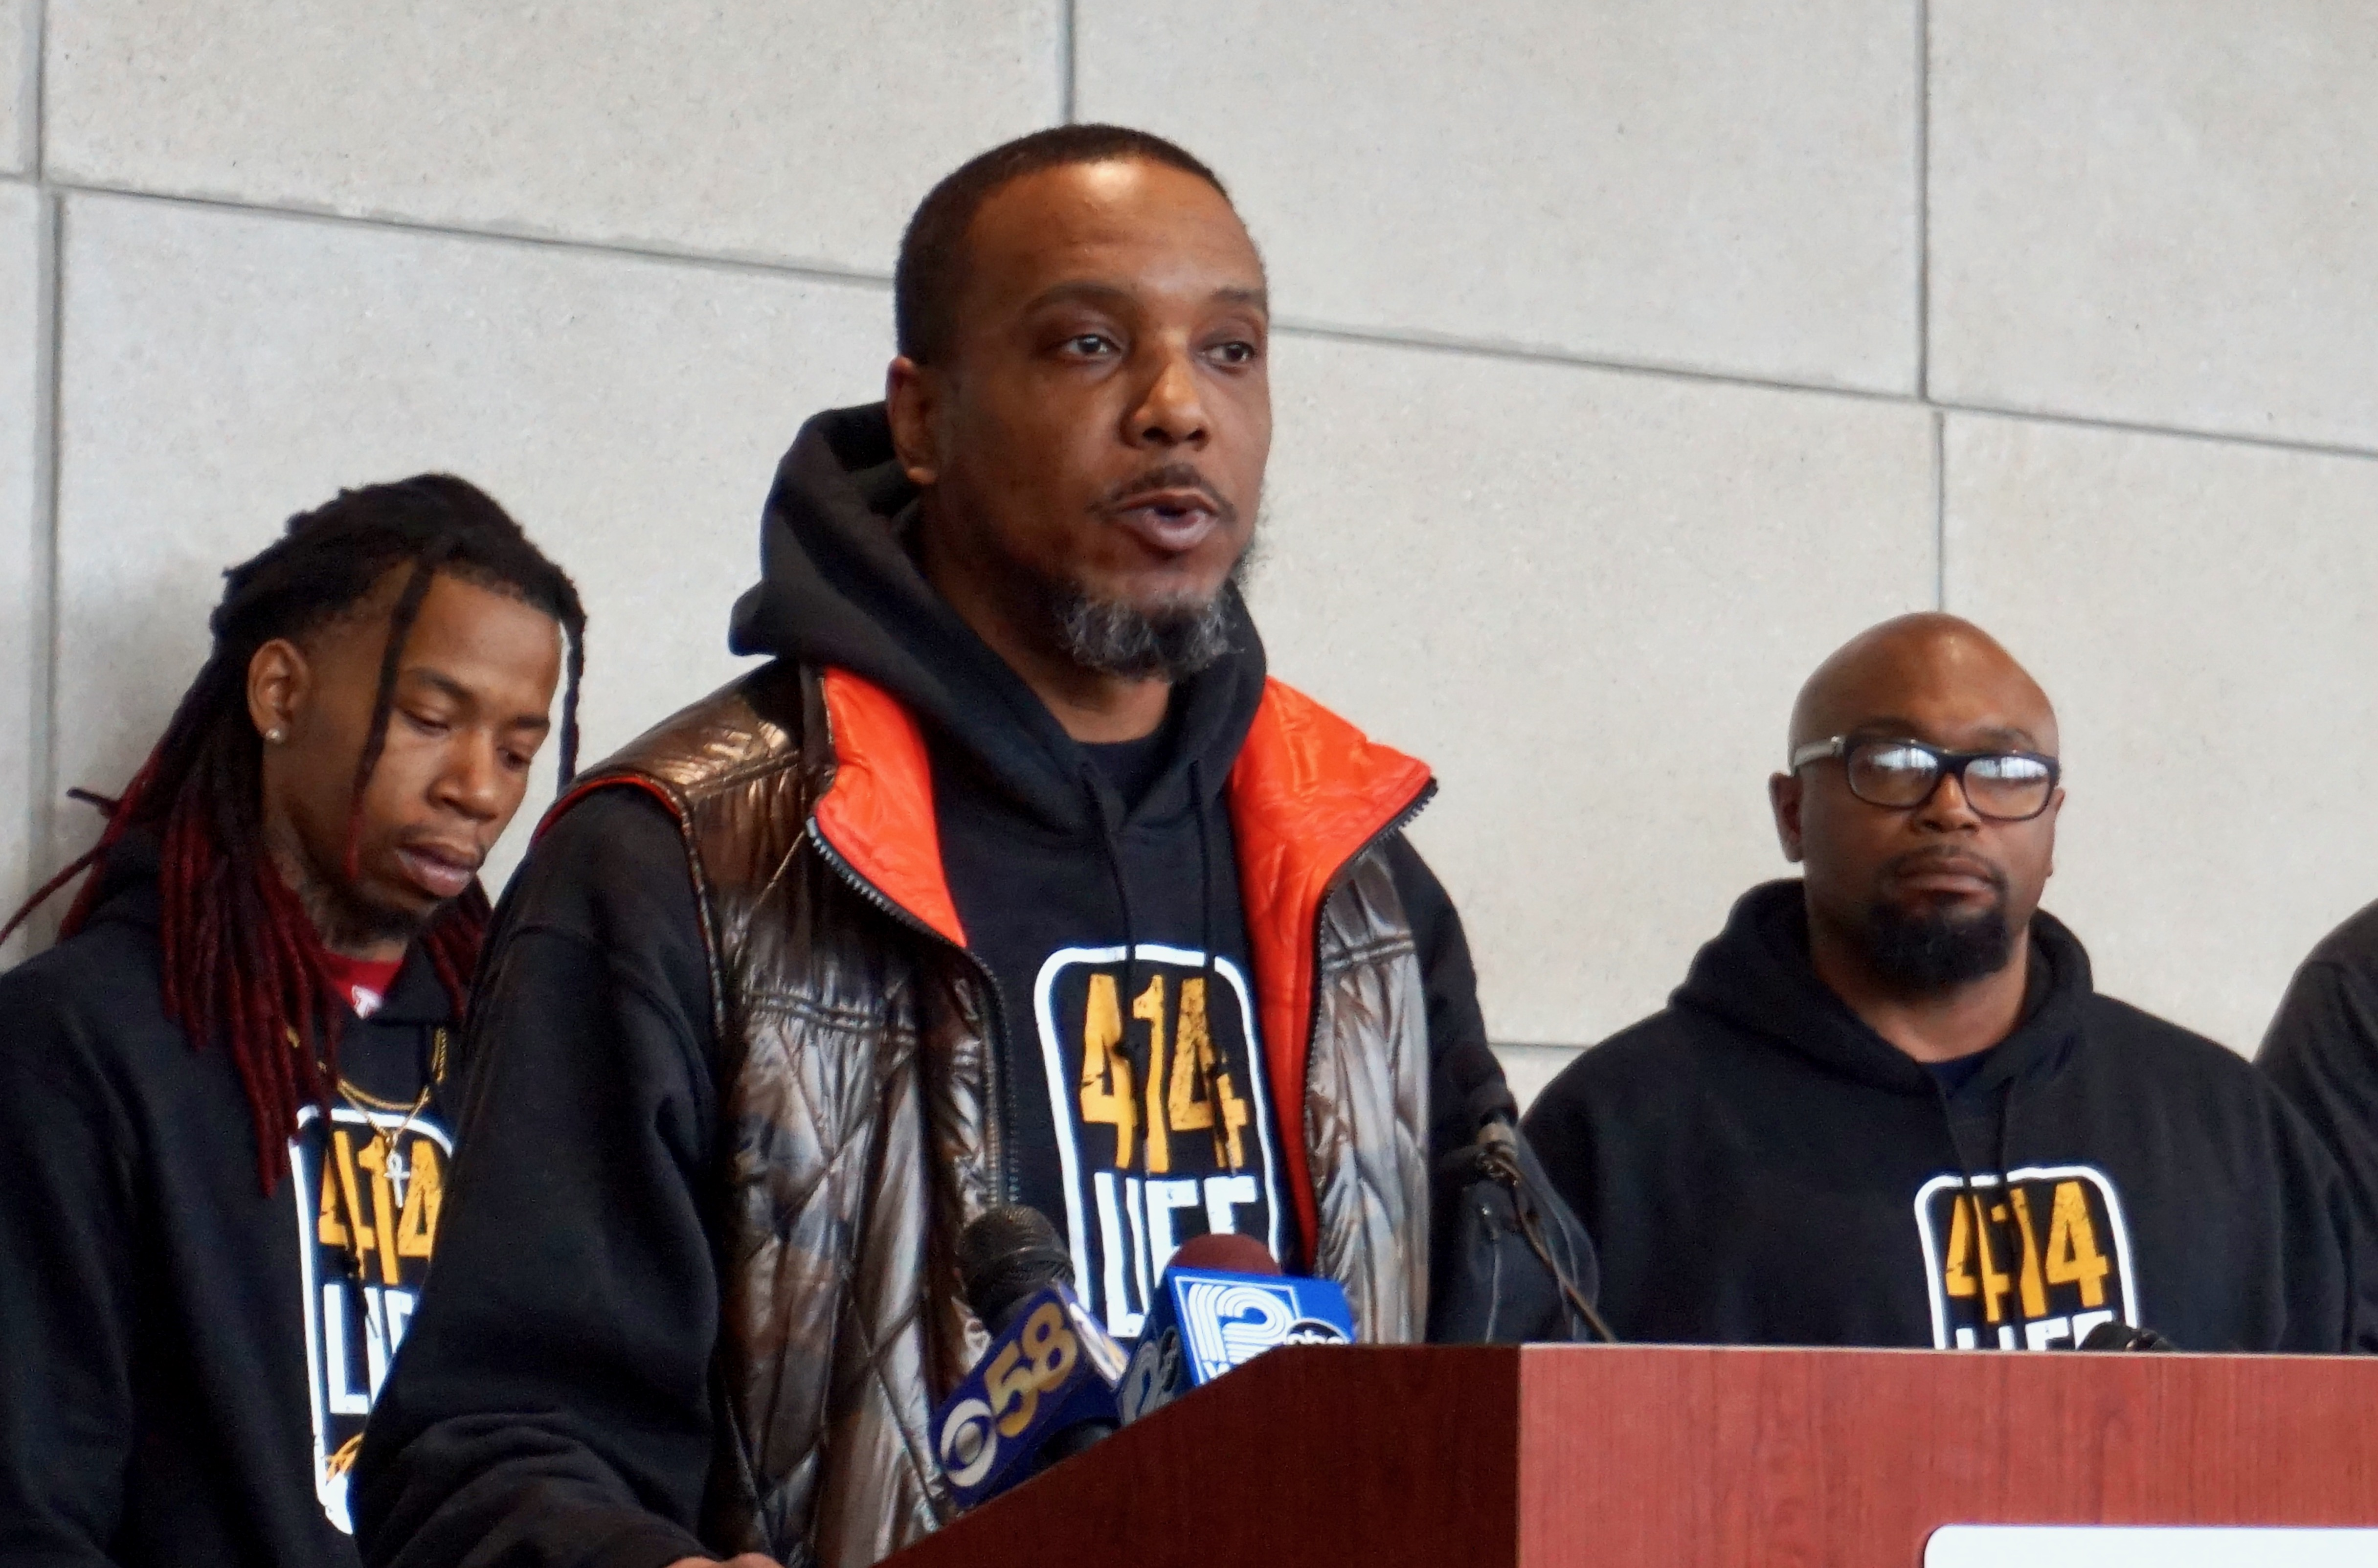 """Chris Conley, 414 Life outreach and resource coordinator, Uniting Garden Homes, standing with the """"interrupters"""" team, speaks to the press at the Froedtert Cancer Center. Photo by Andrea Waxman/NNS."""